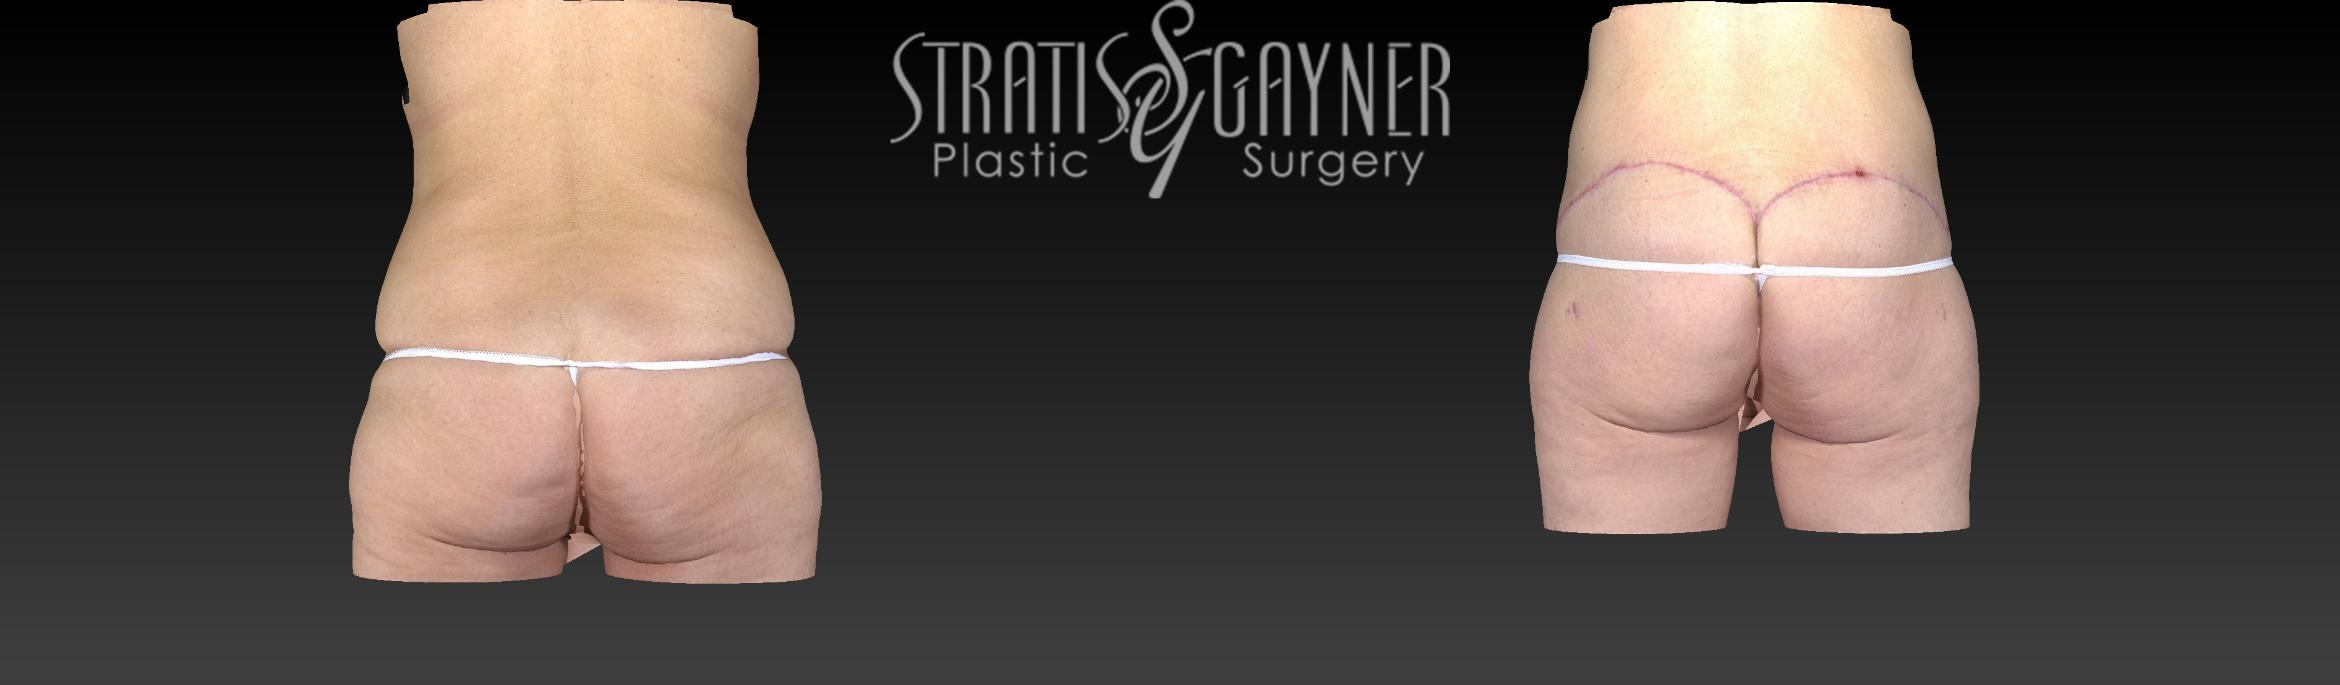 Body Lift Case 159 Before & After View #3 | Harrisburg, PA | Stratis Gayner Plastic Surgery